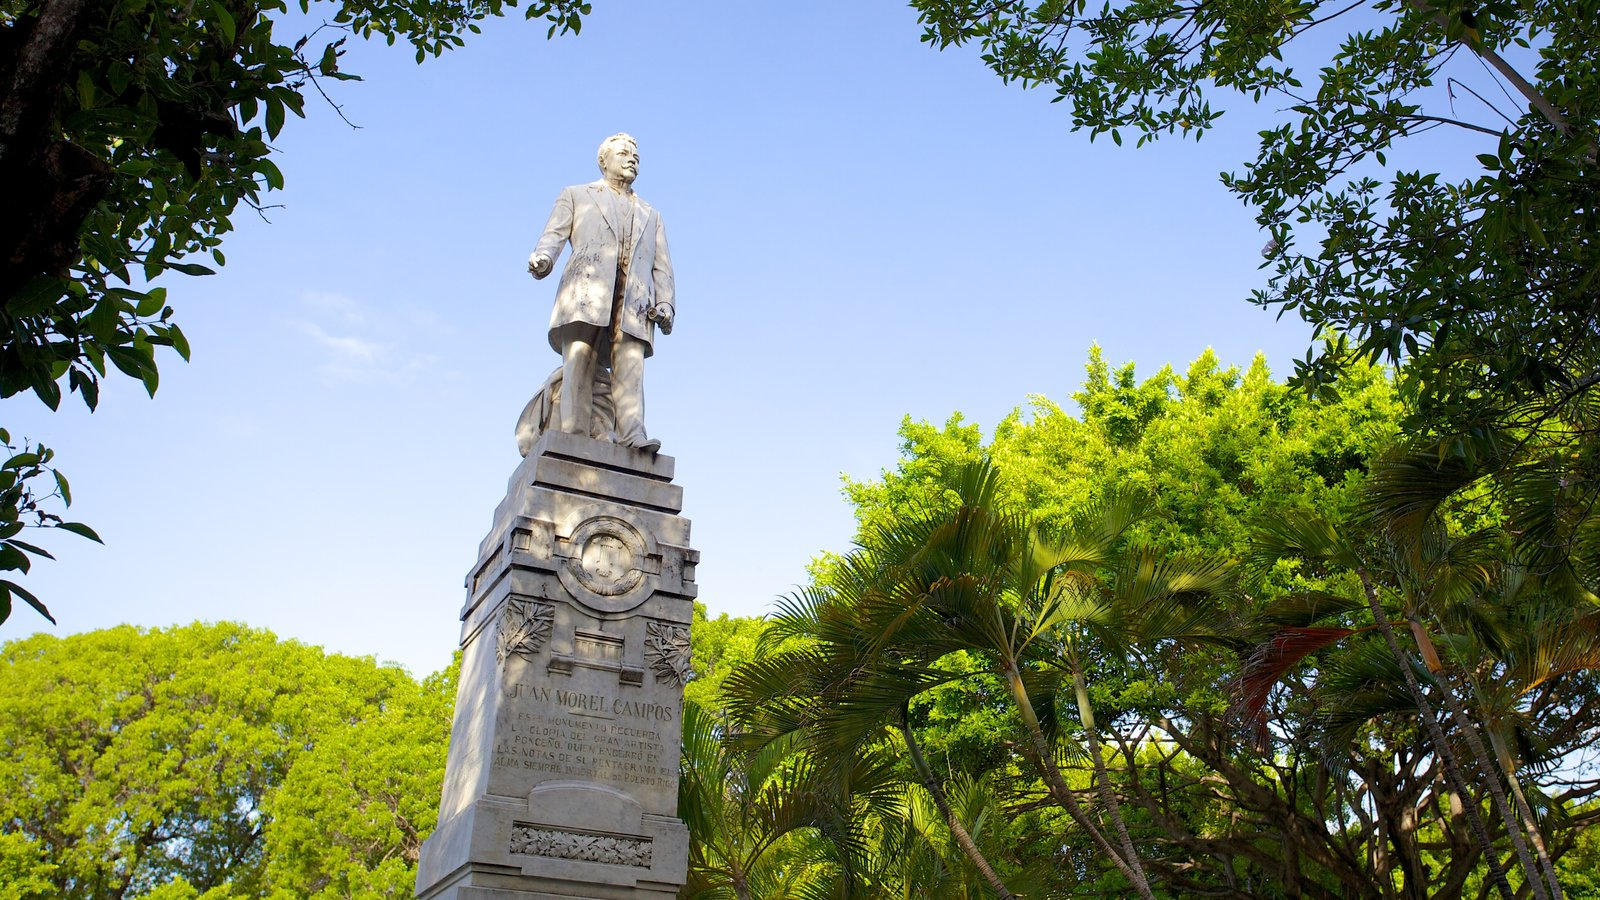 Parque de Bombas featuring a monument and a statue or sculpture